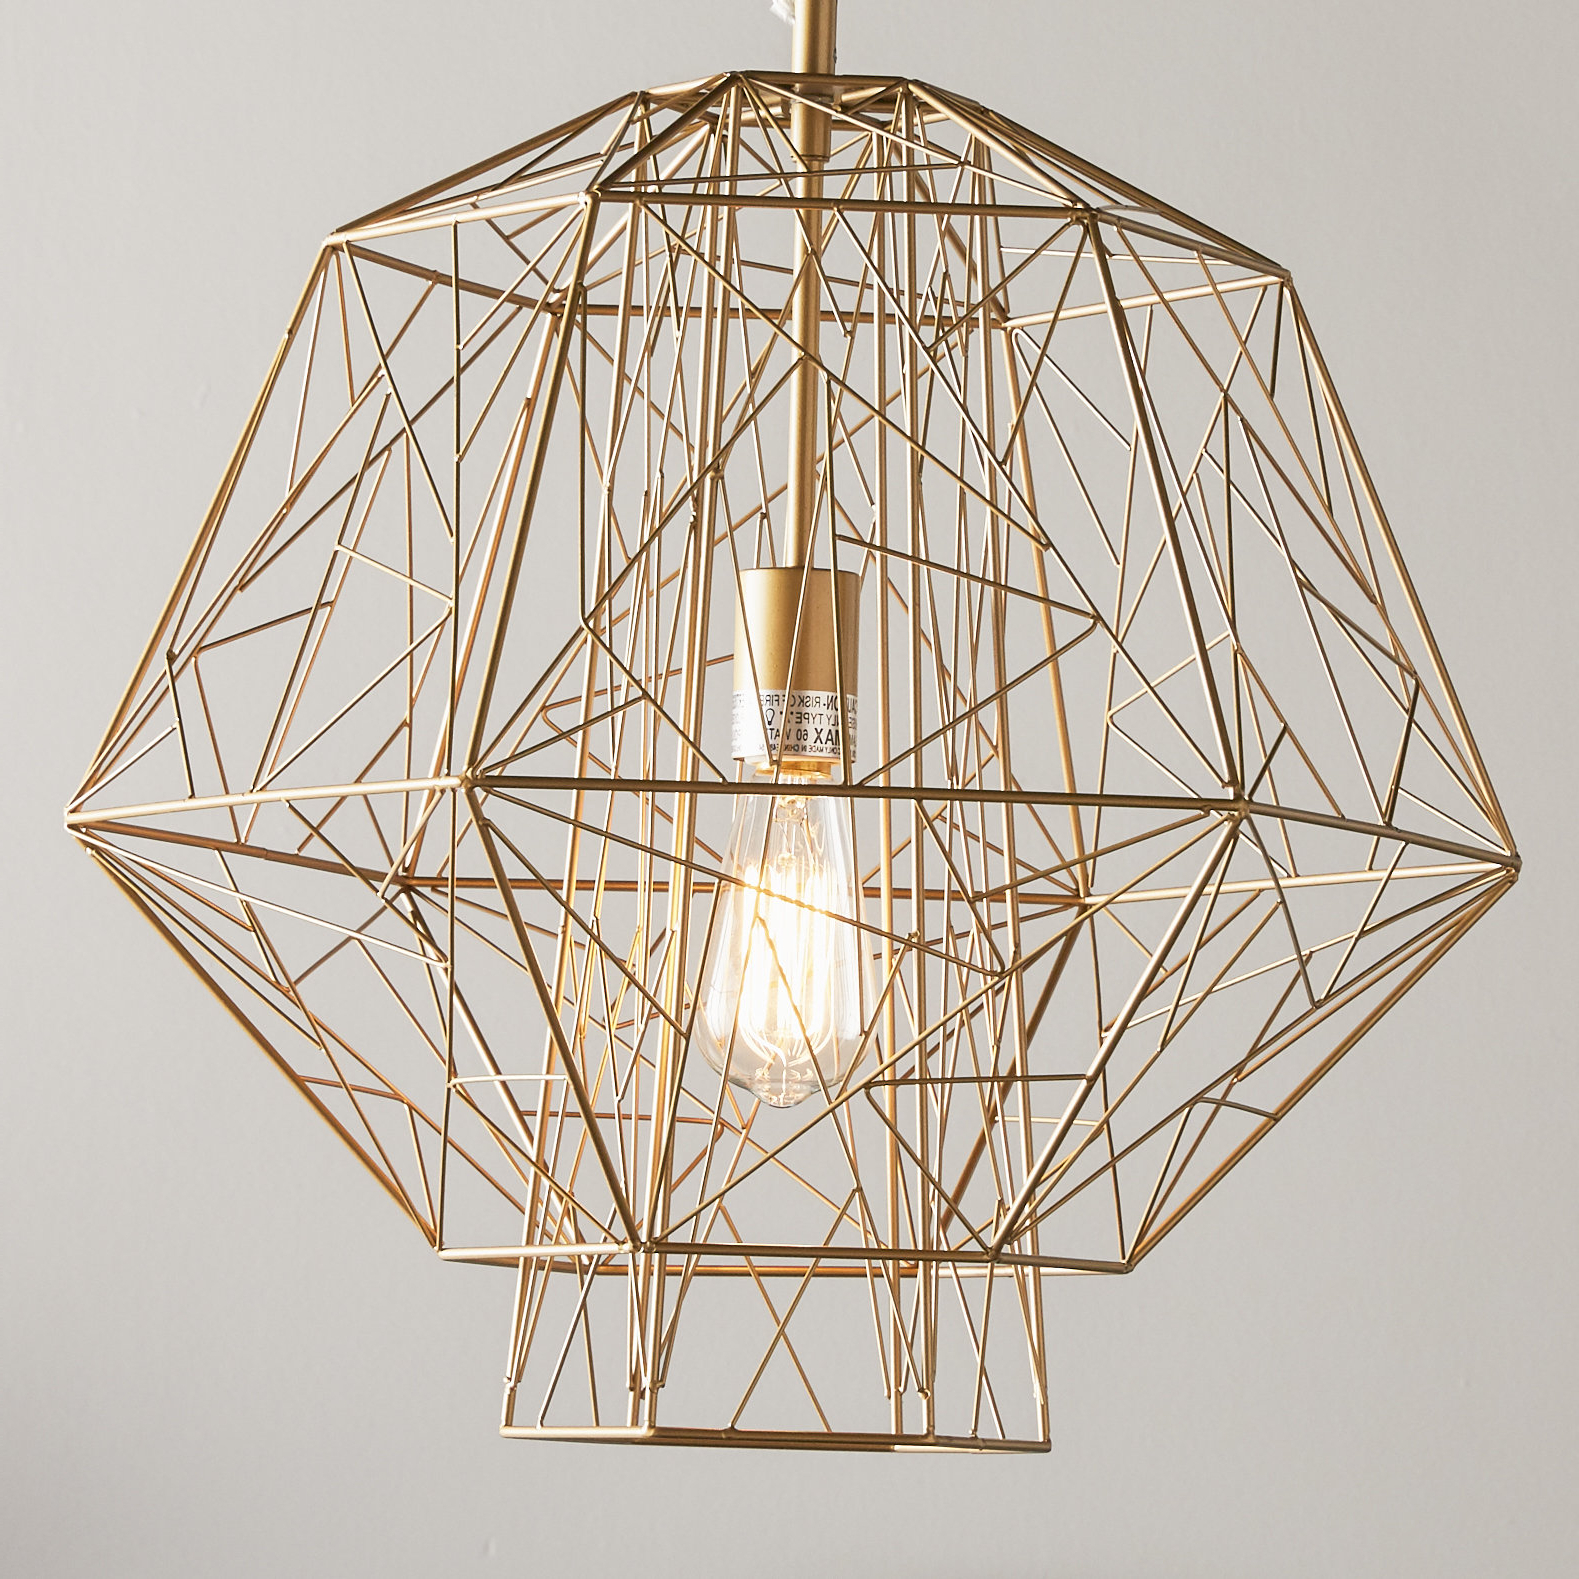 Hydetown 1 Light Single Geometric Pendant Within 2020 Hydetown 1 Light Single Geometric Pendants (Gallery 2 of 25)